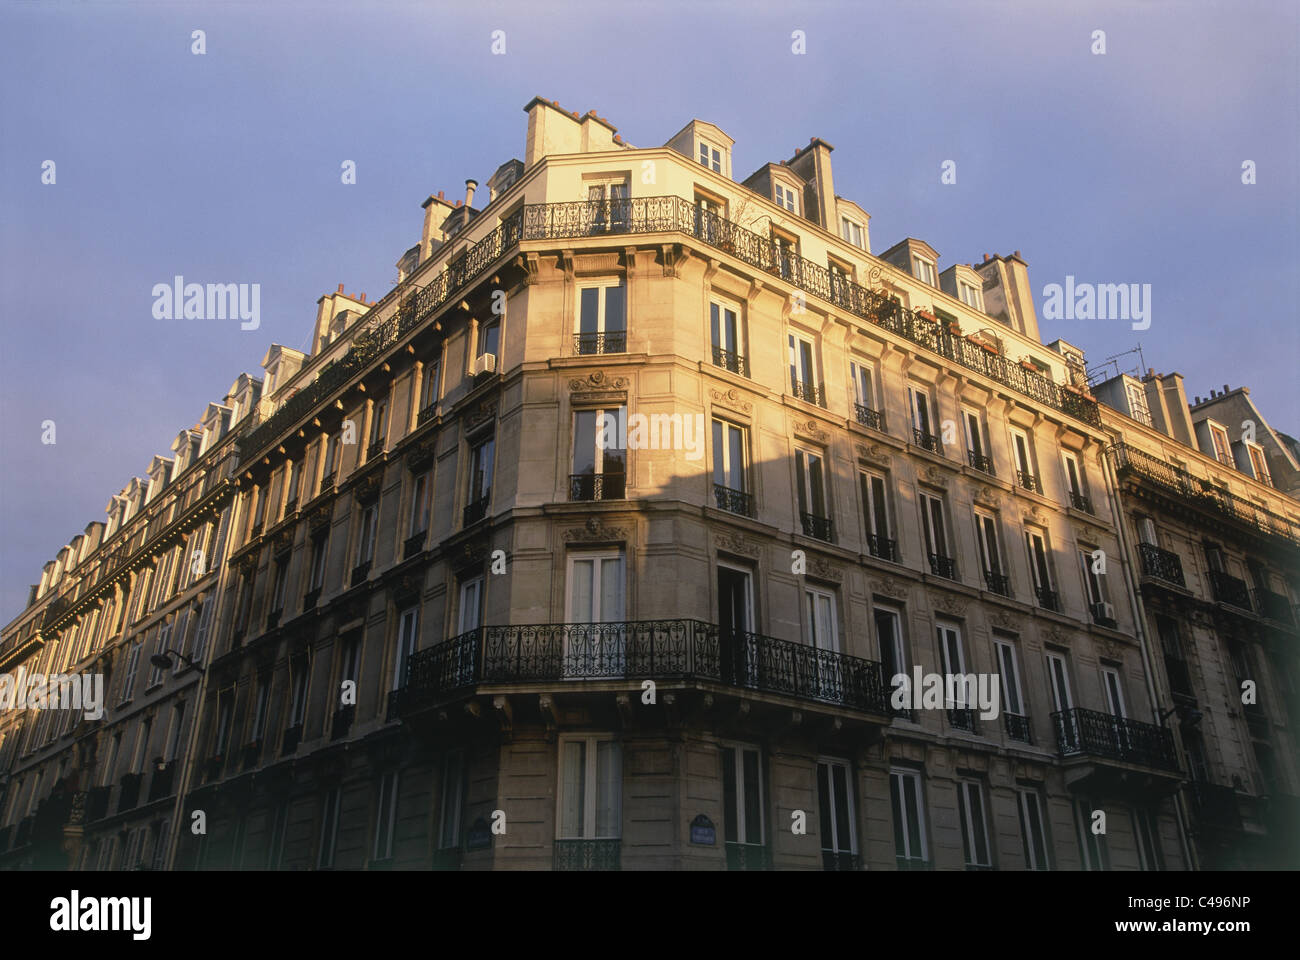 Photograph of the old buildings of Paris at dusk - Stock Image